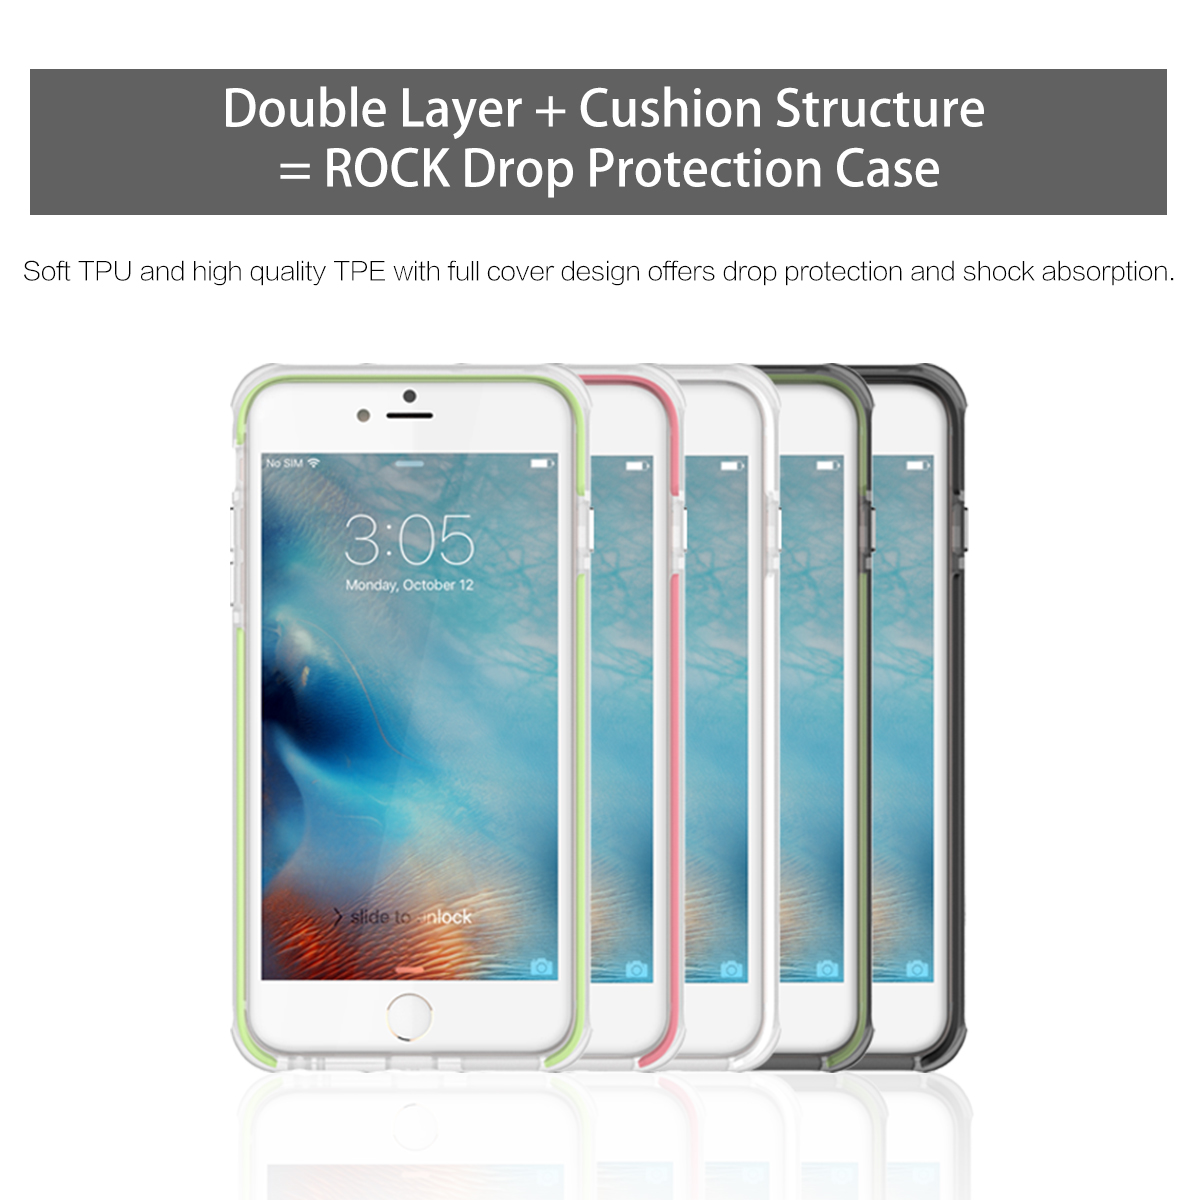 Rock Double Layer Strong Protection Soft TPU TPE Cover Protection Case For iPhone 6 6S 4.7inch